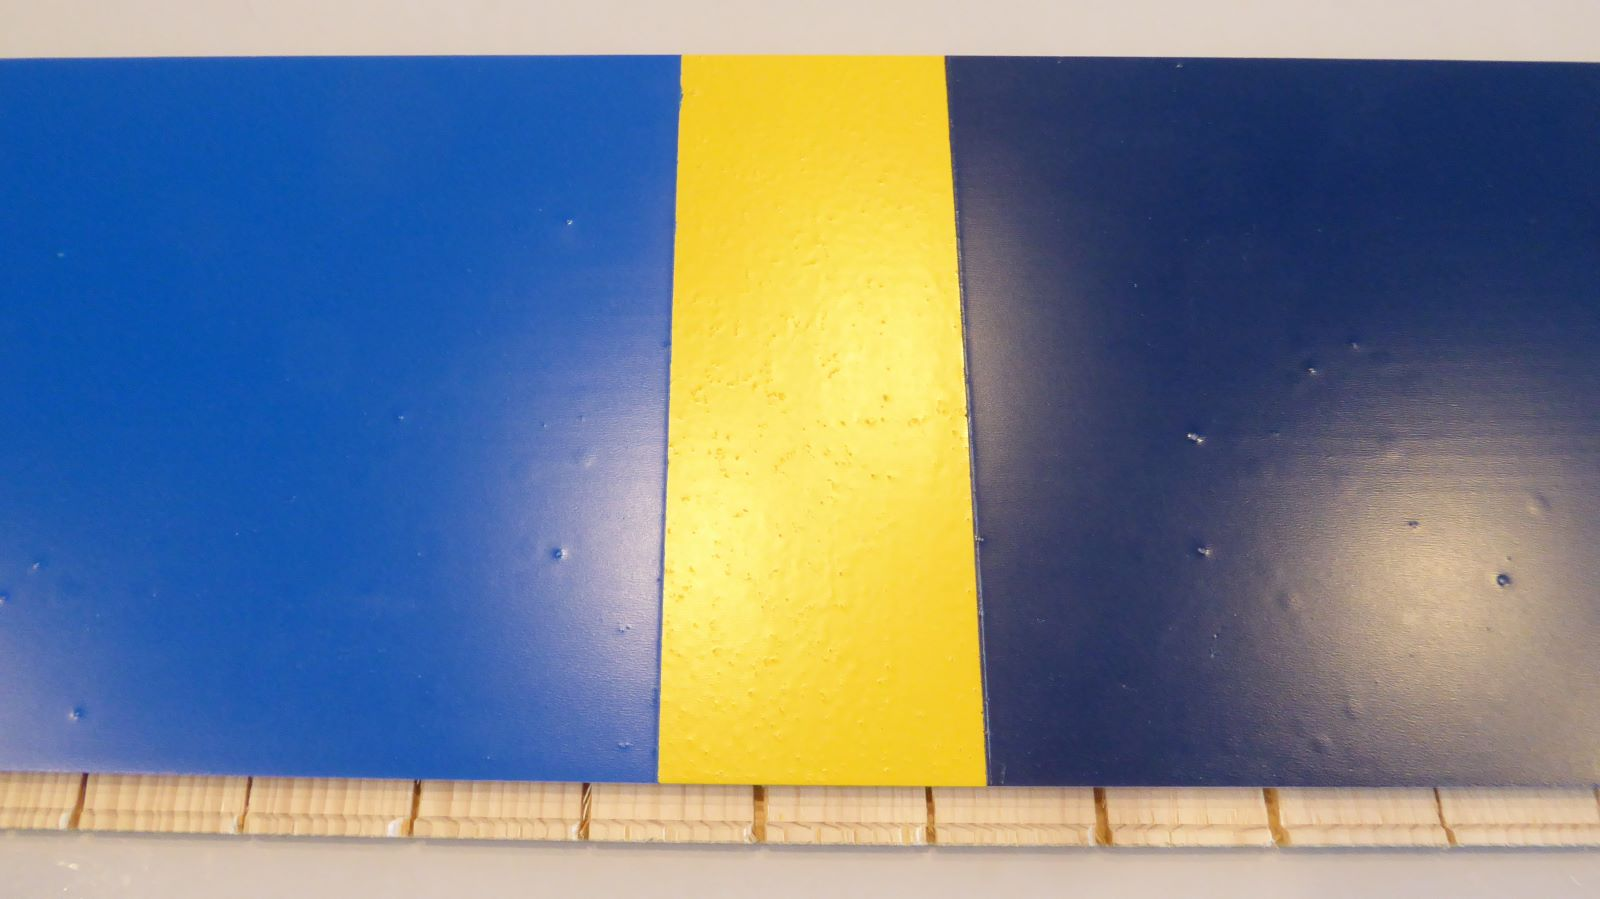 The colors performed for the Swedish national team